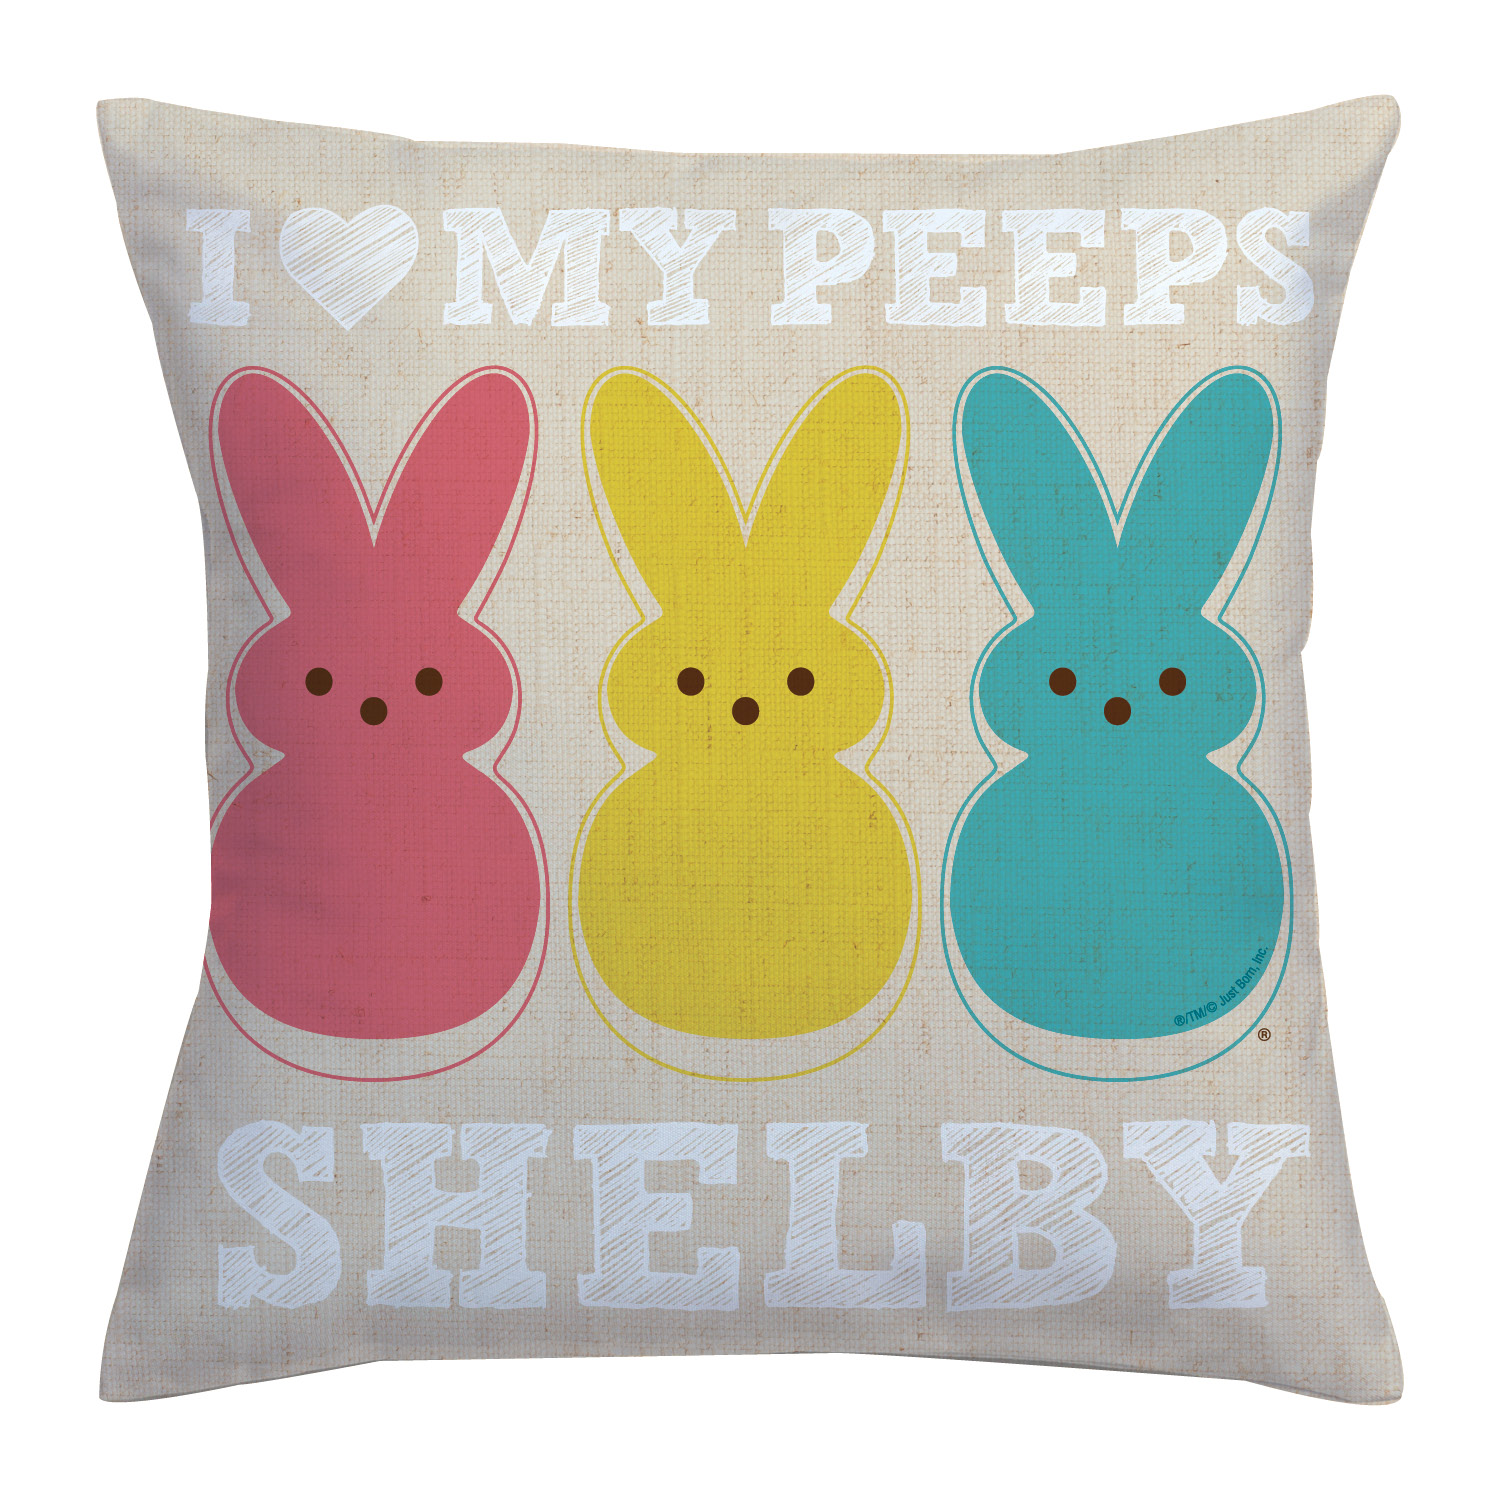 Personalized I Love My Peeps Throw Pillow